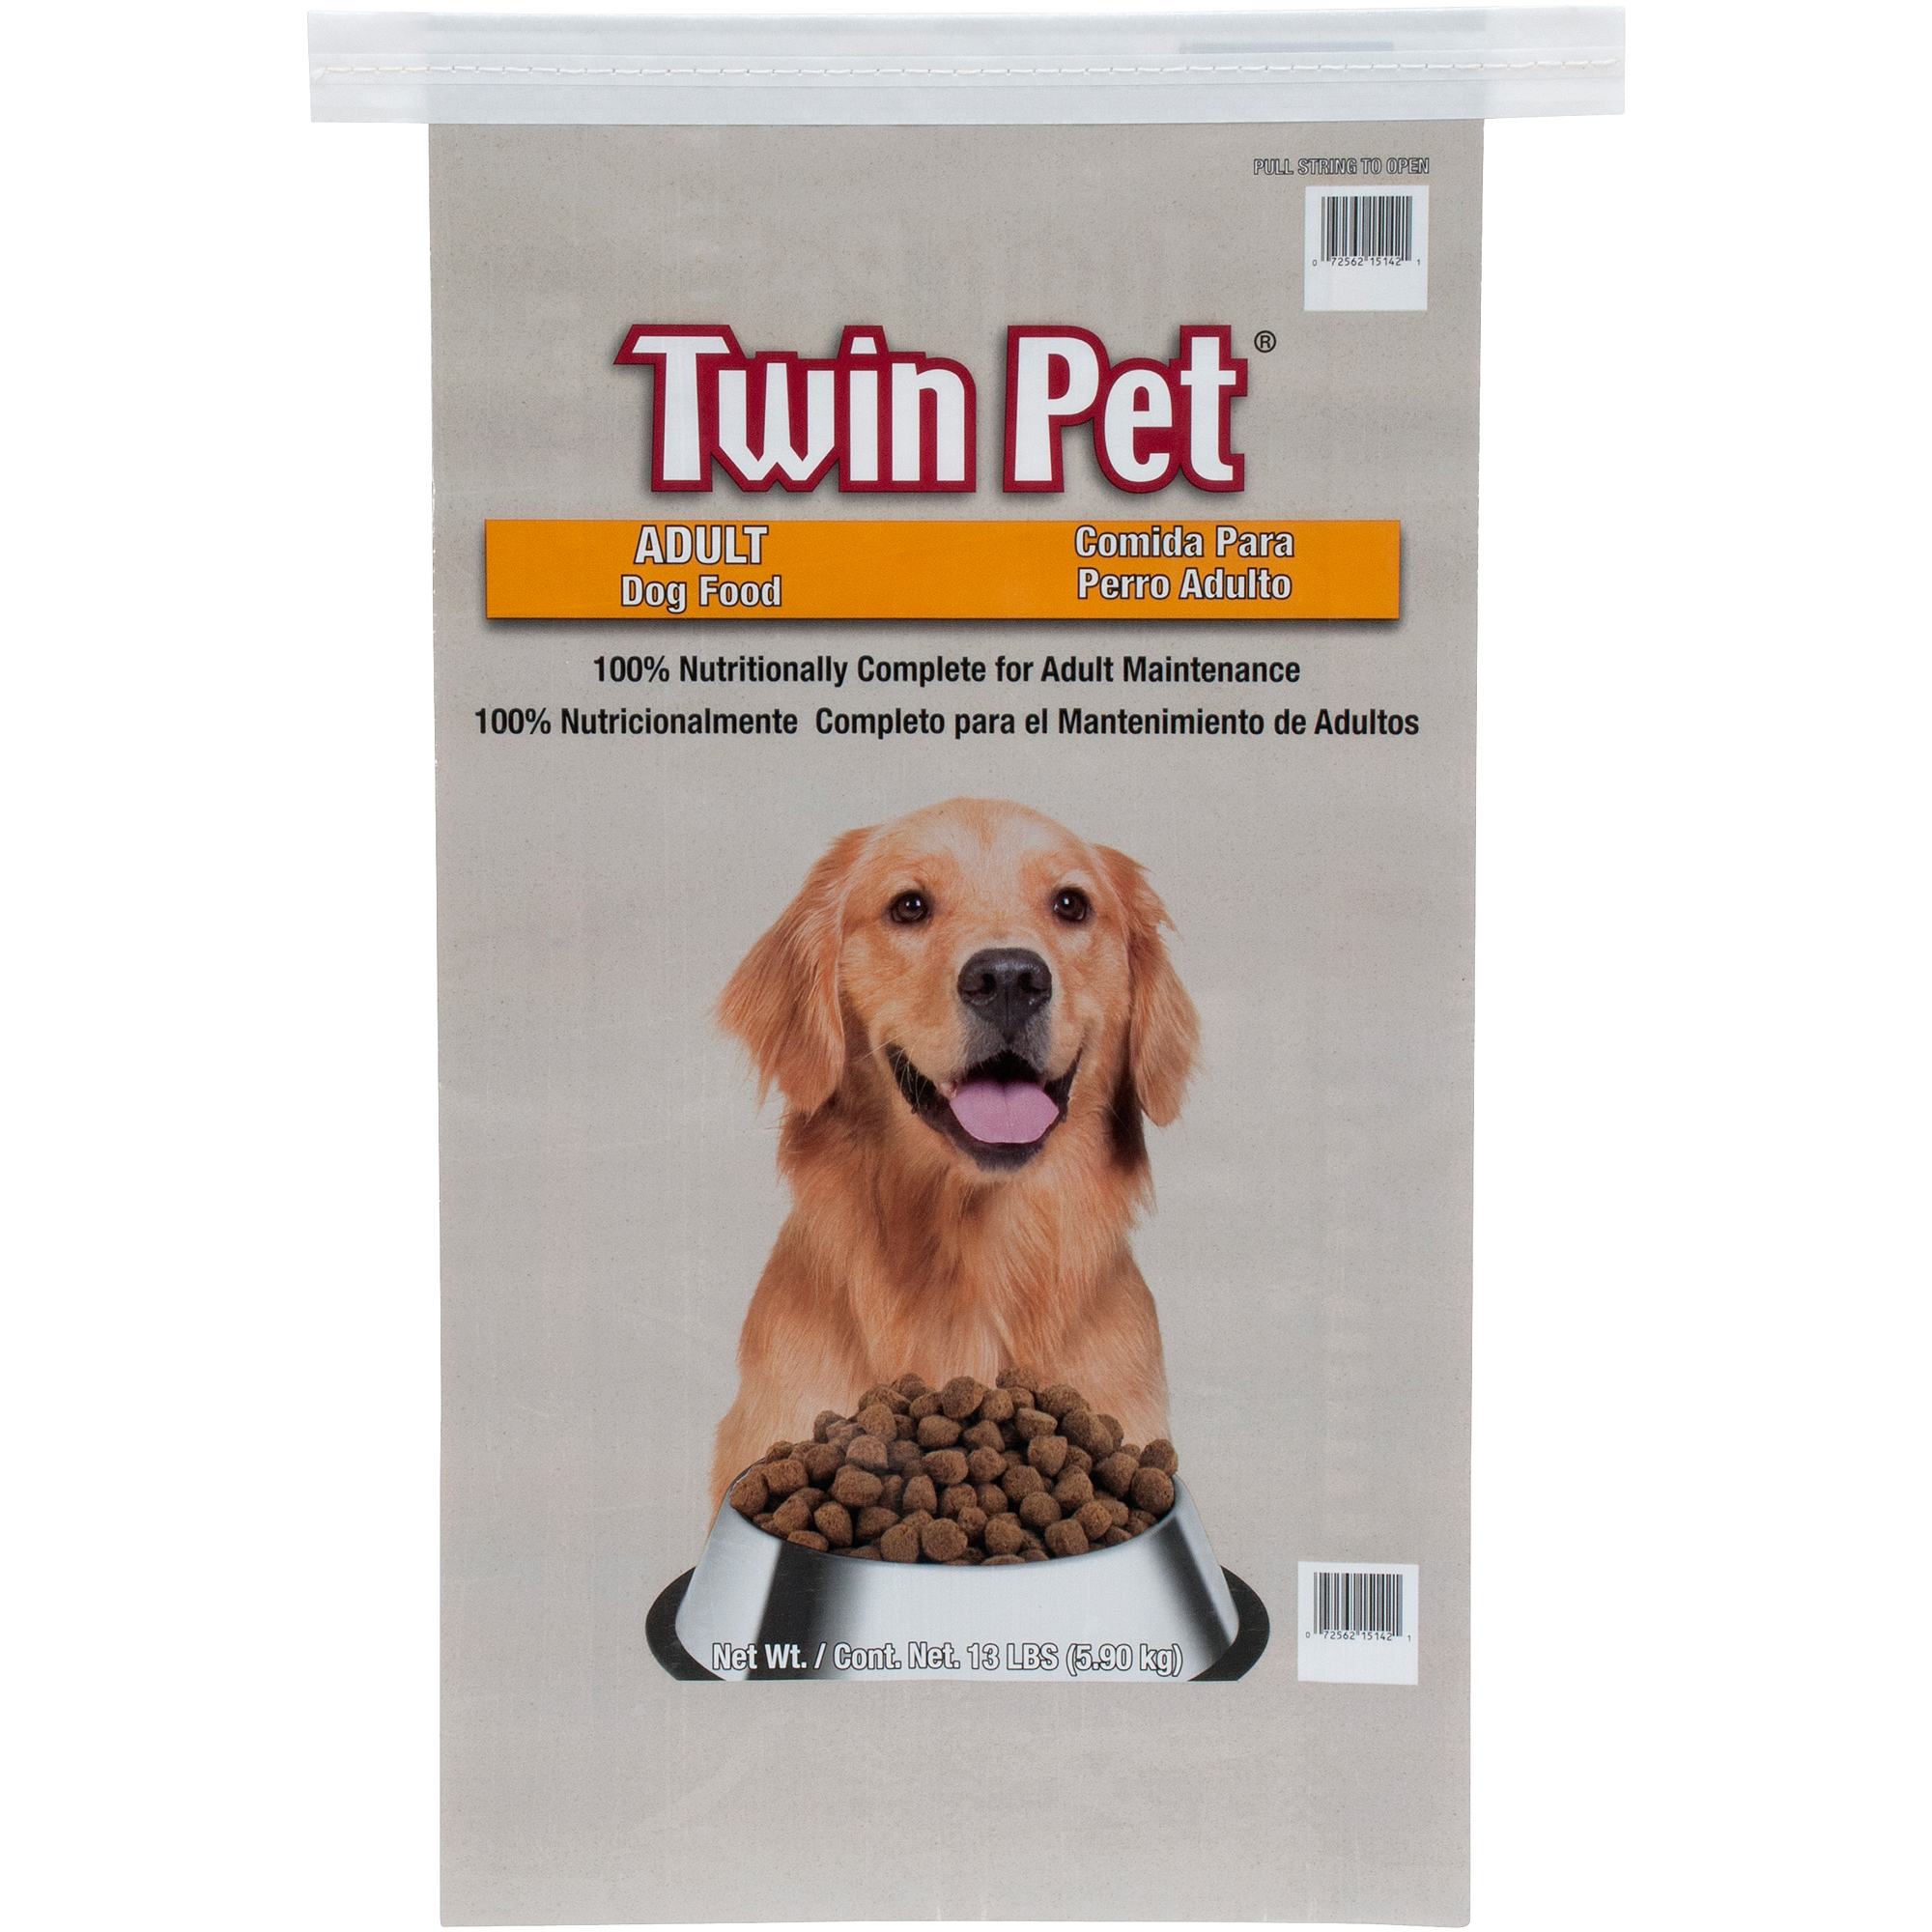 Twin Pet Adult Dog Food, 13 lb